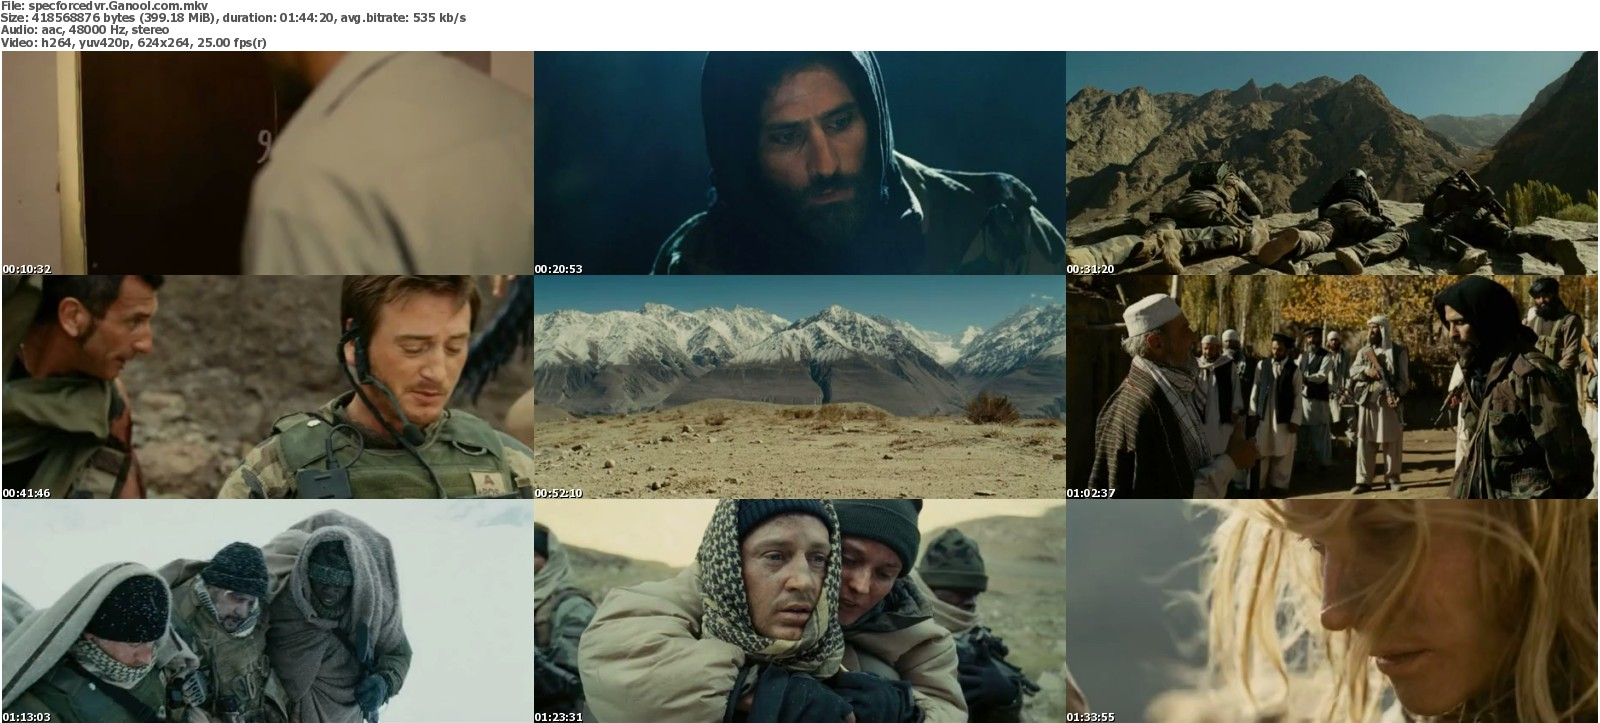 Free Movie Download: Special Forces (2011) DVDRip 400MB Ganool